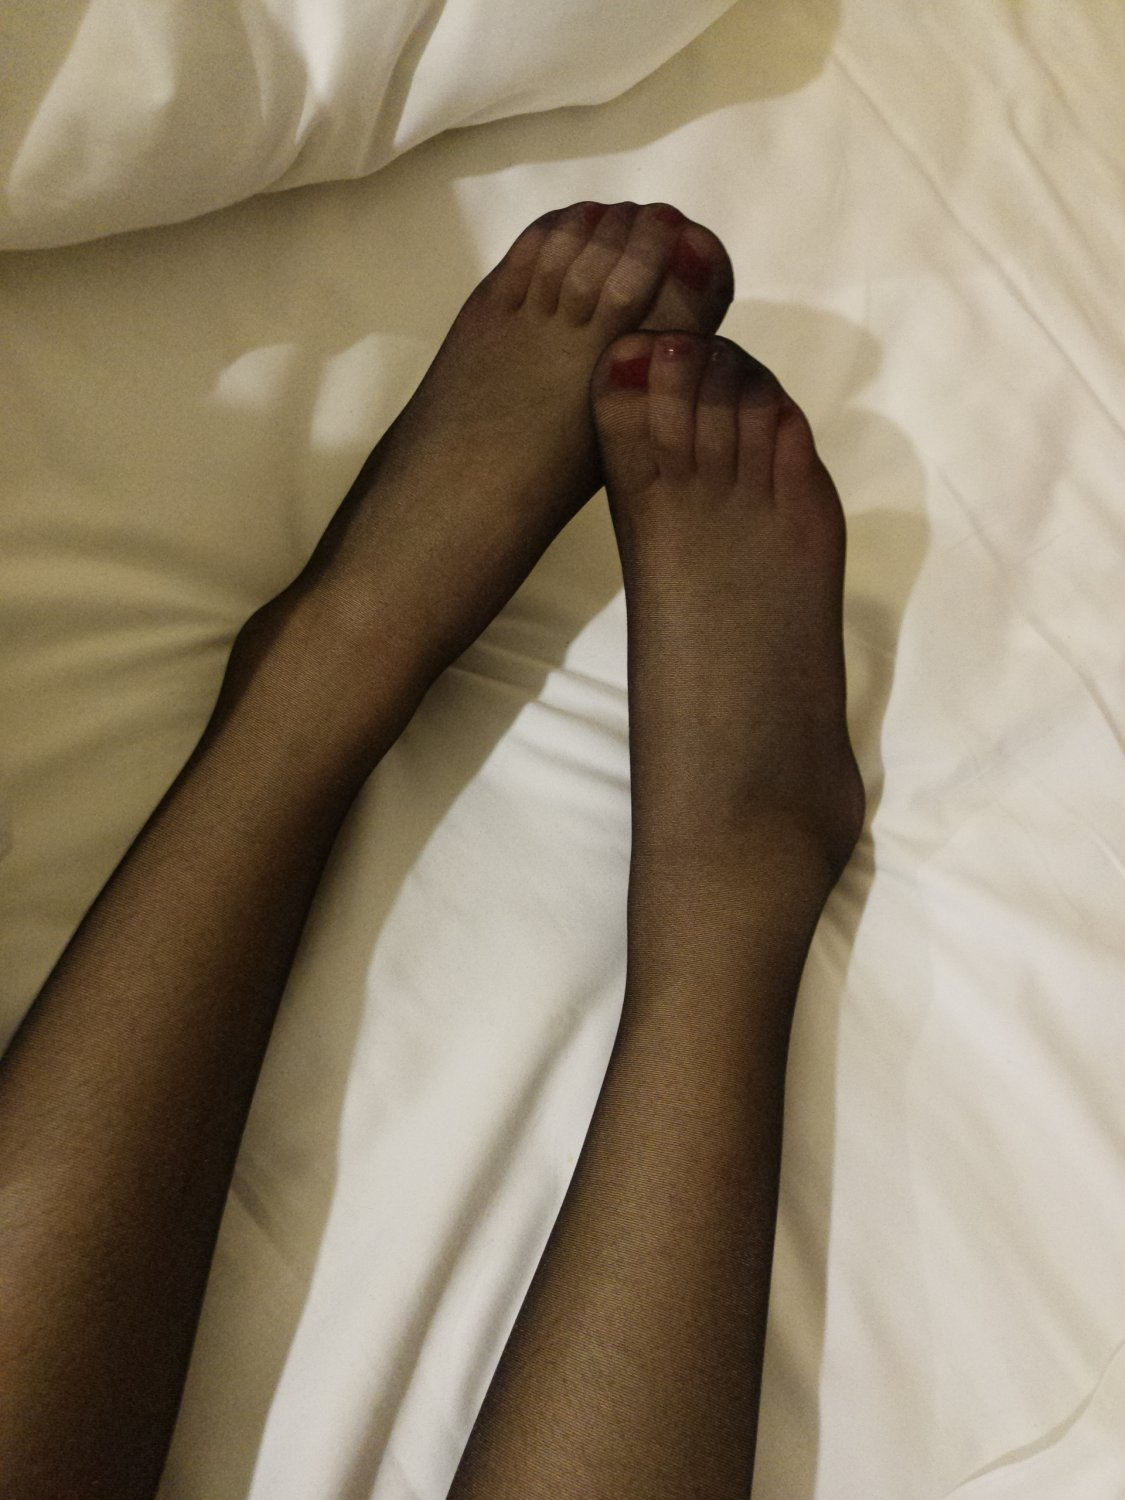 Super Sexy Skinny Asian Teen With Black Stocking